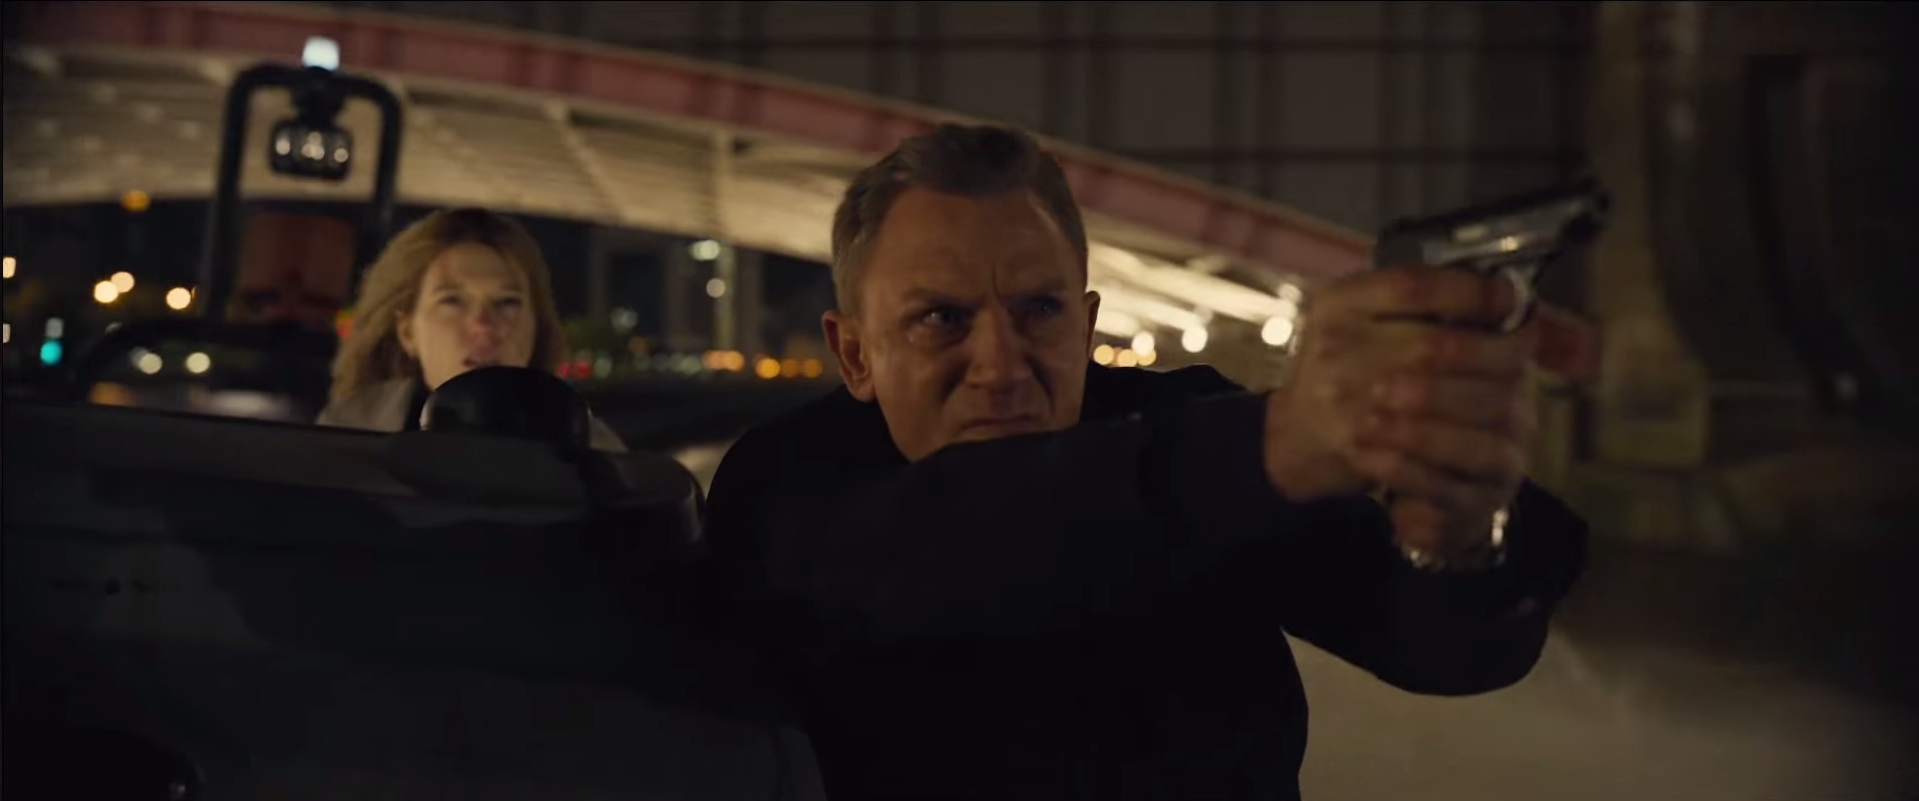 swann helicopter with Spectre Trailer Analysis A Return To Classic James Bond 37216 on Bond Spectre Big Bond Guns Girls 200 Million Blowout Inside Story Expensive Dazzling 007 Yet likewise Interesting in addition 5856353 moreover 320776290457 in addition Watch.